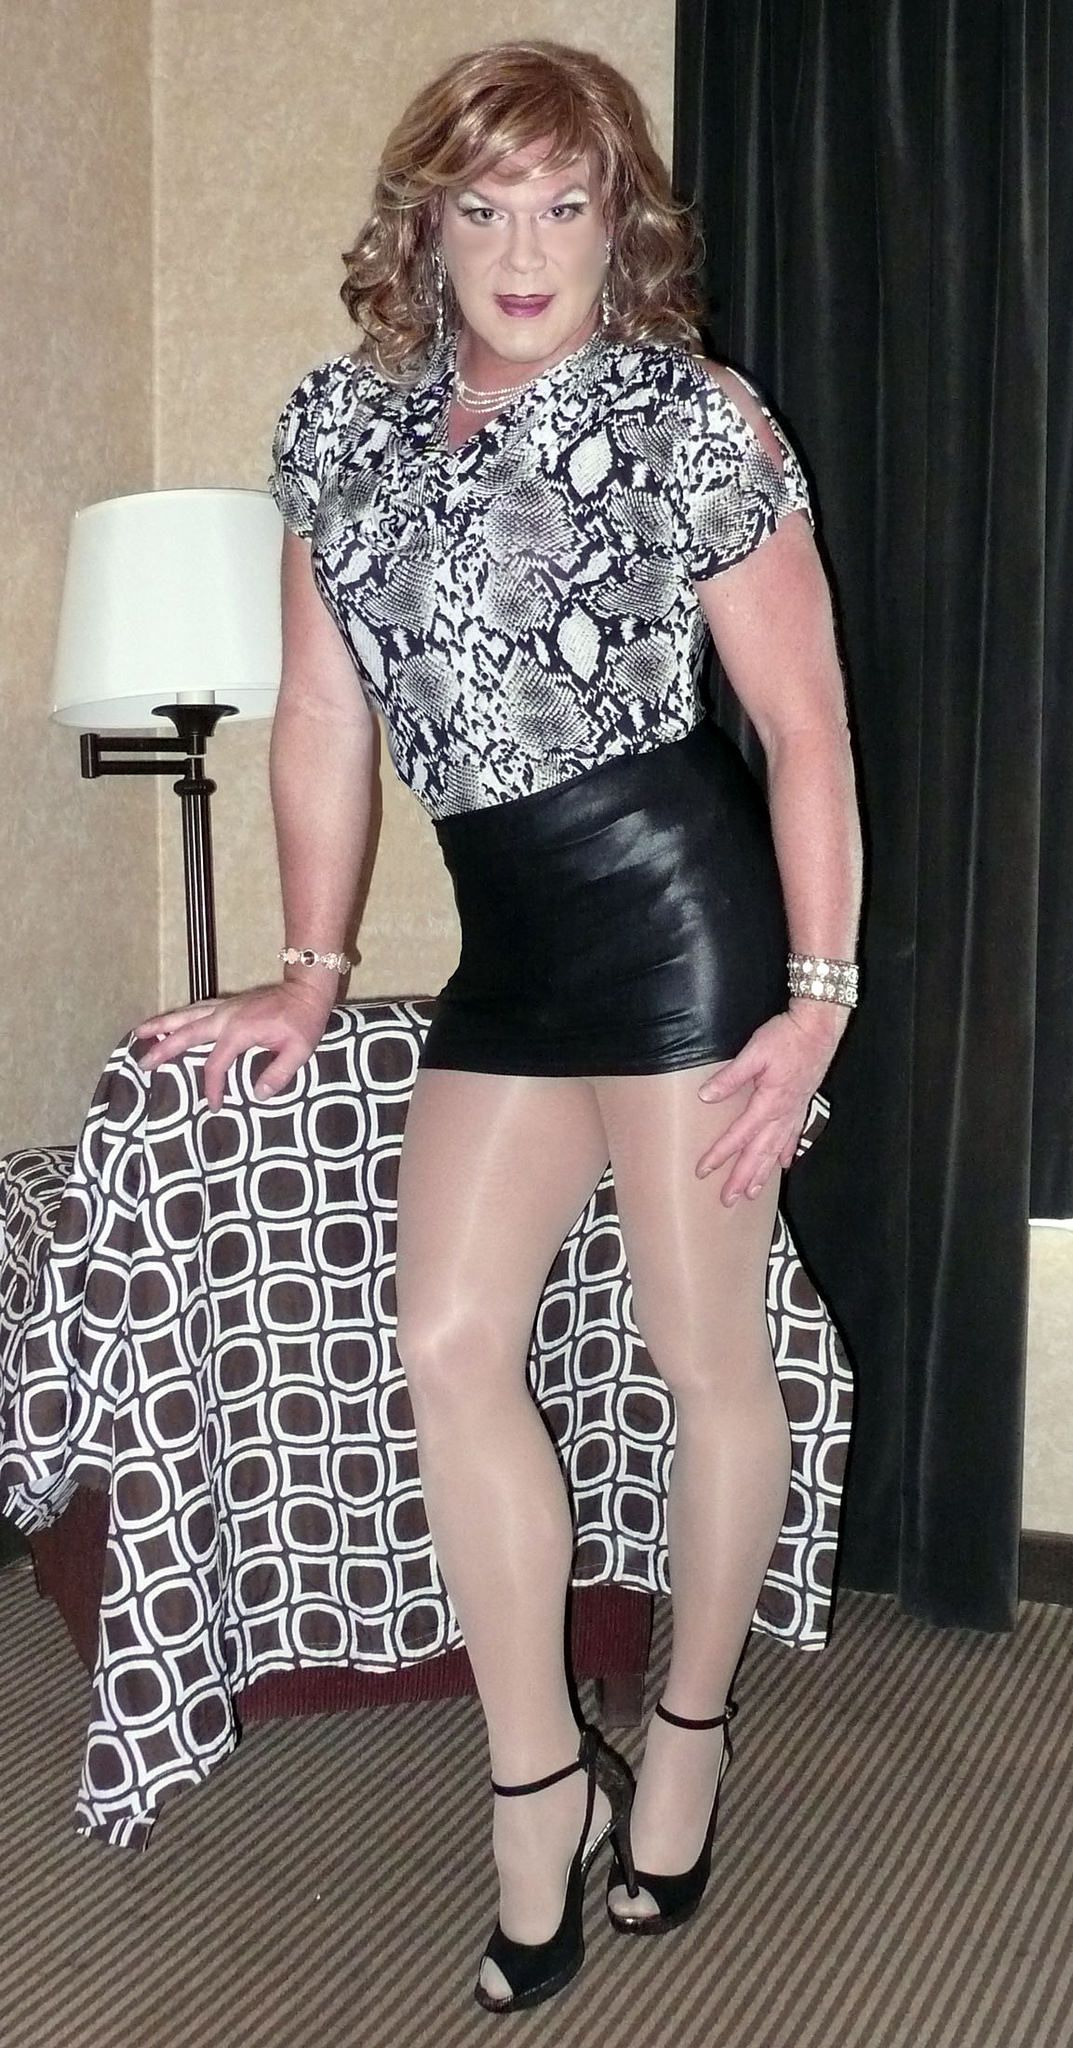 Crossdresser heels flickr